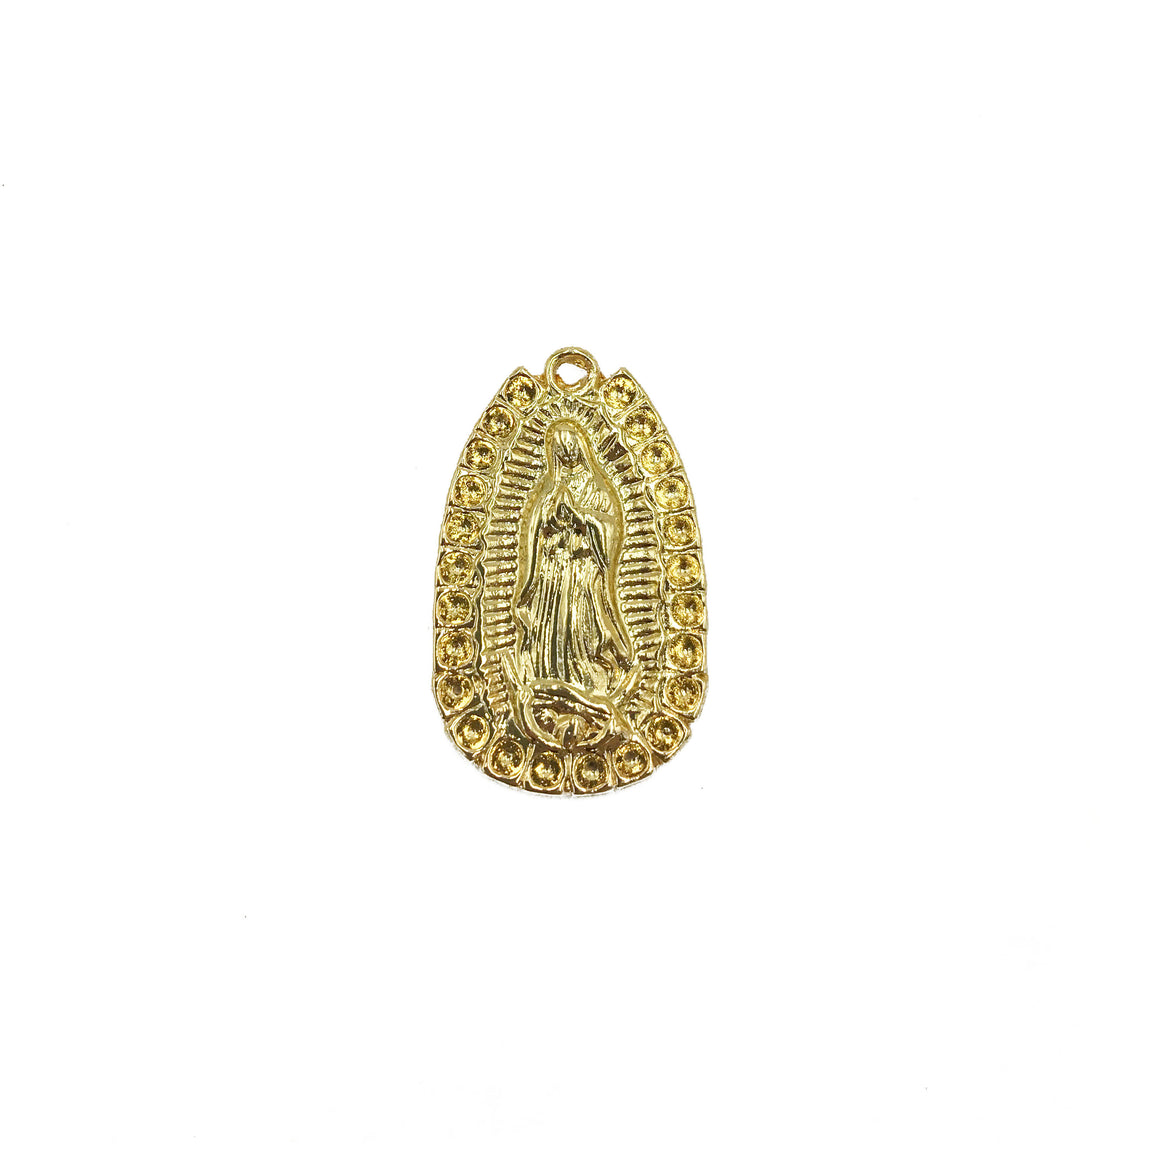 PRAYING PENDANT -  - 8 Other Reasons